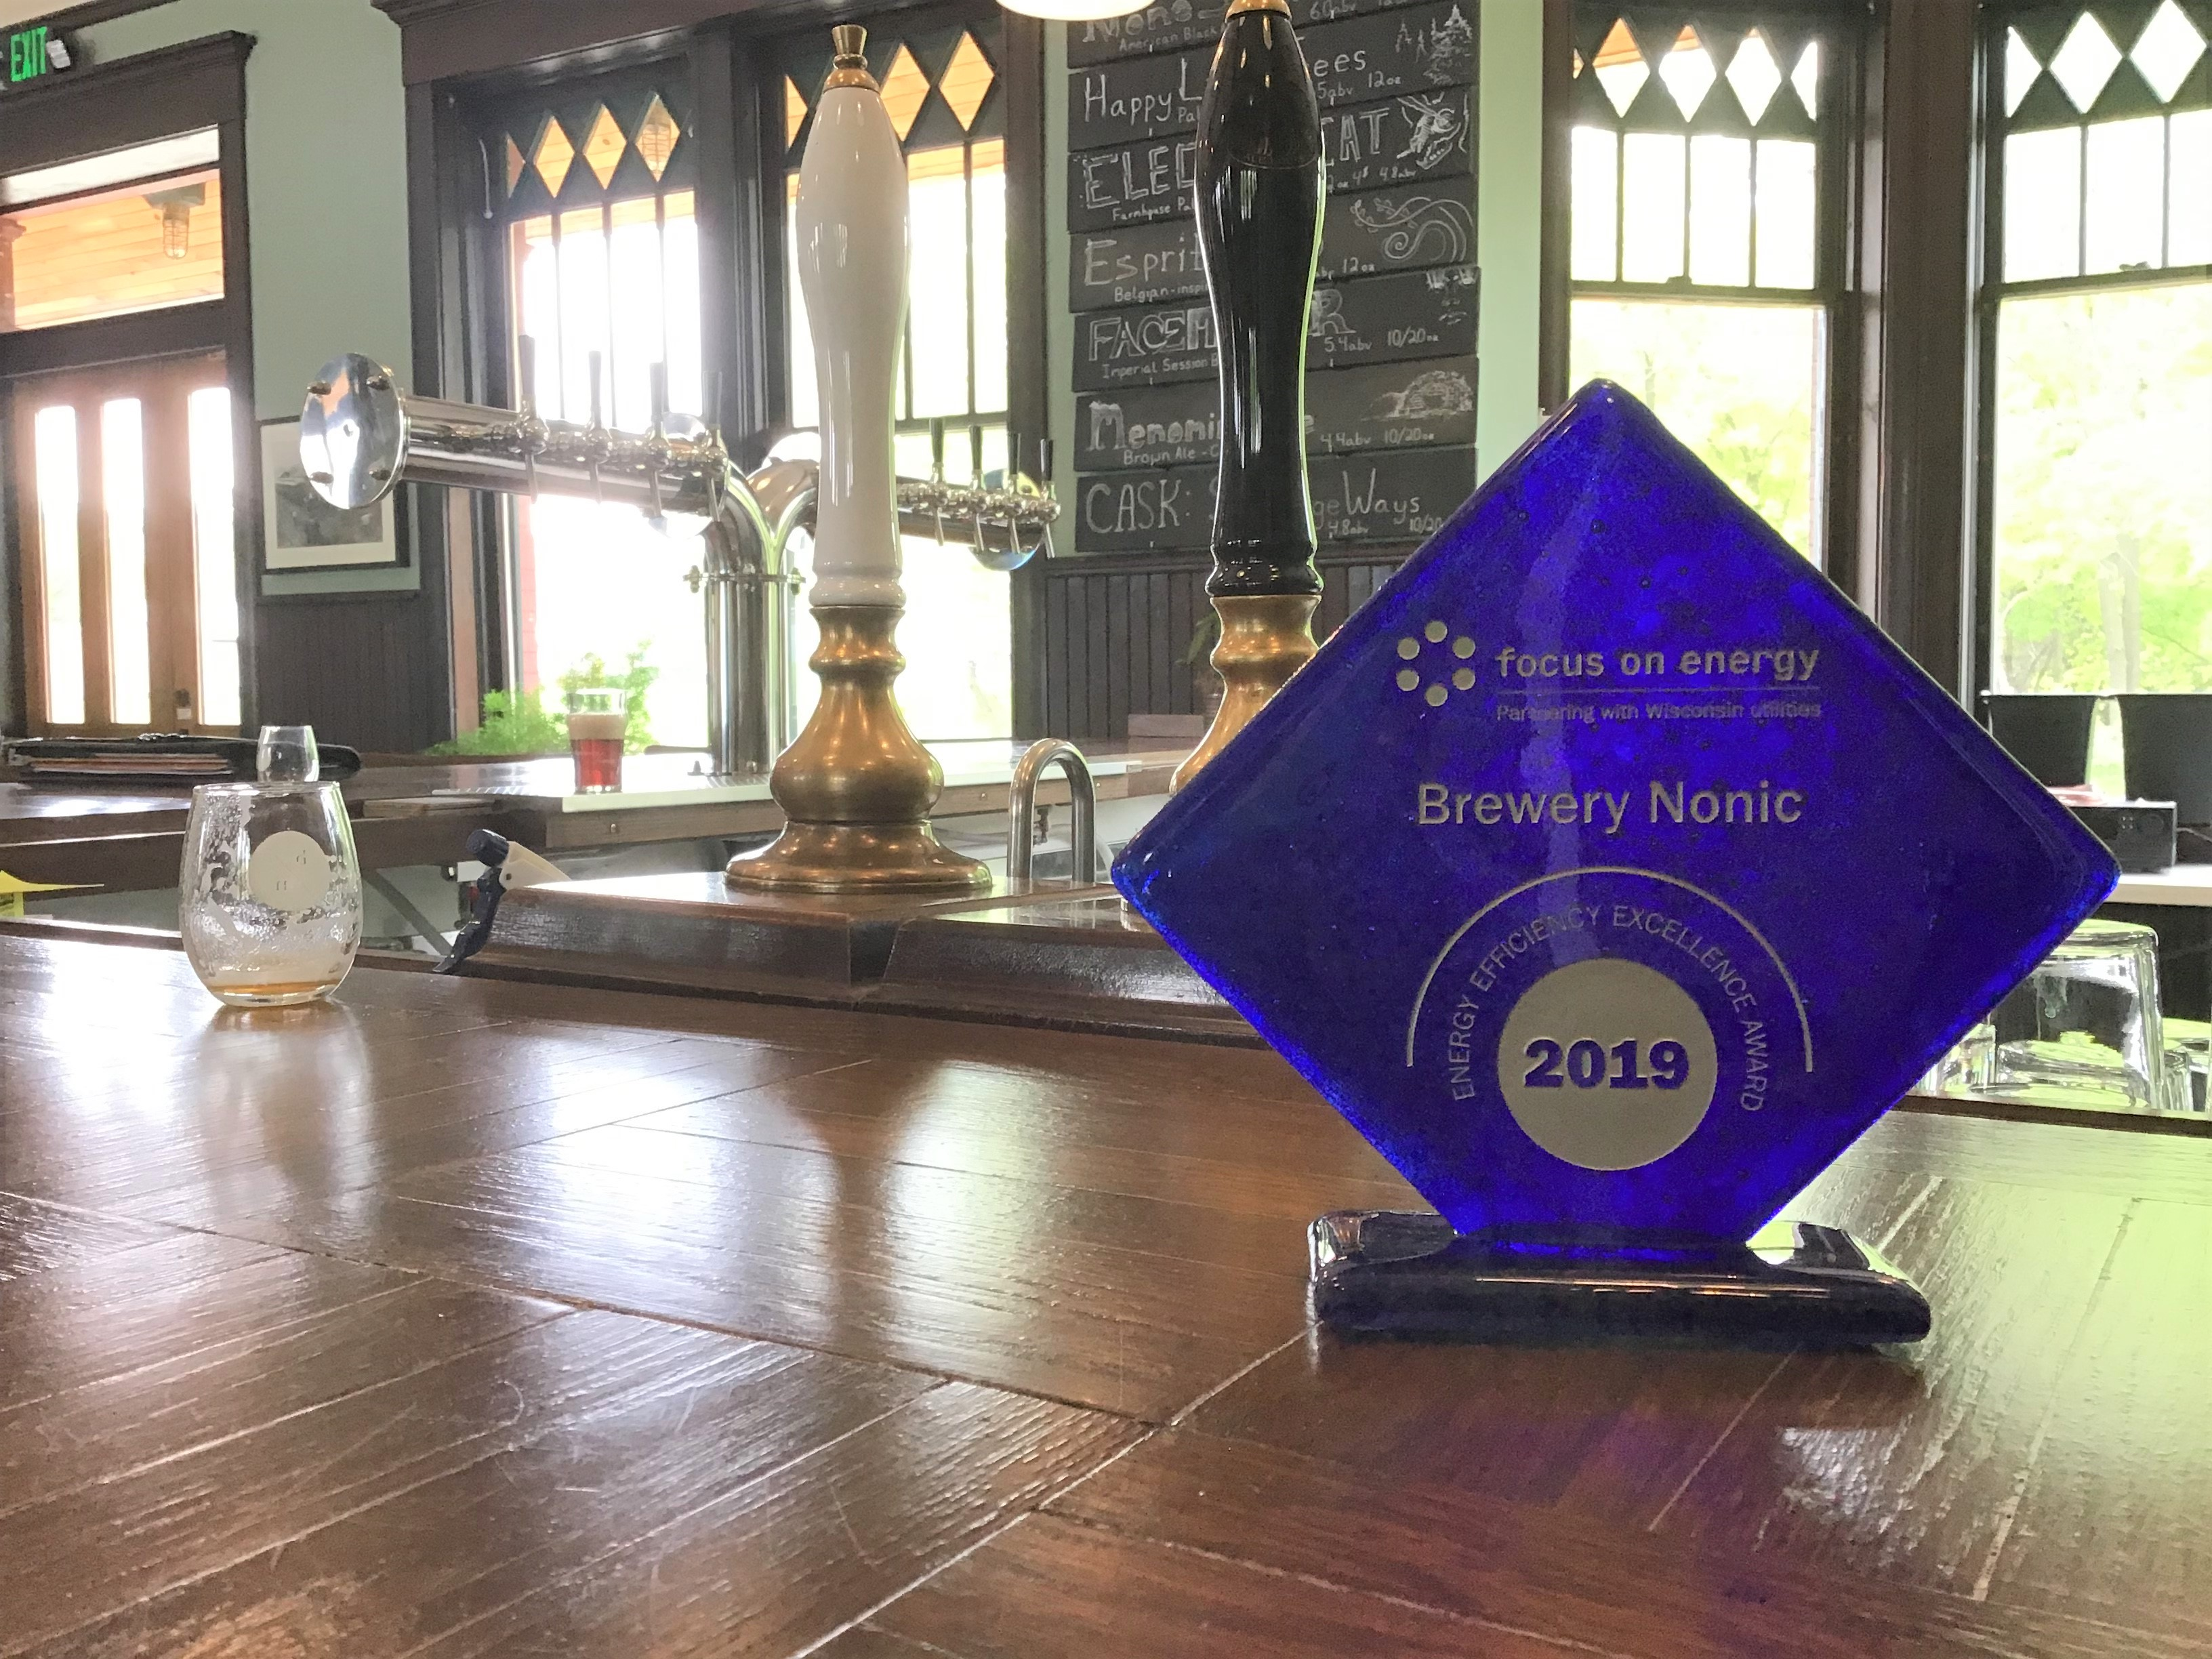 Brewery Nonic Award Picture